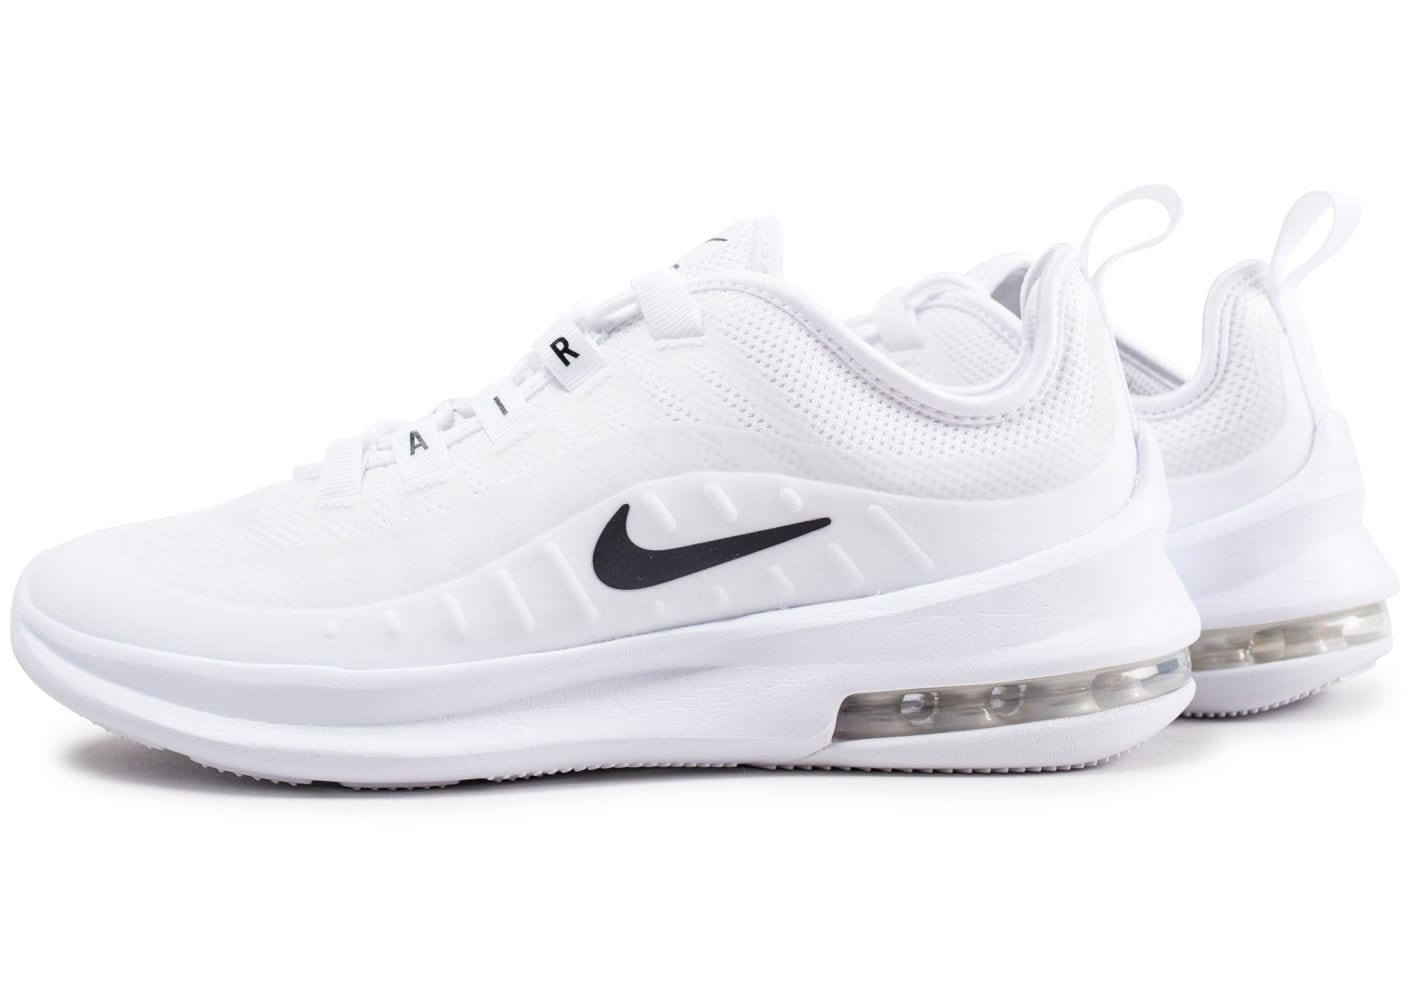 Nike Air Max Axis junior blanche - Chaussures Enfant - Chausport